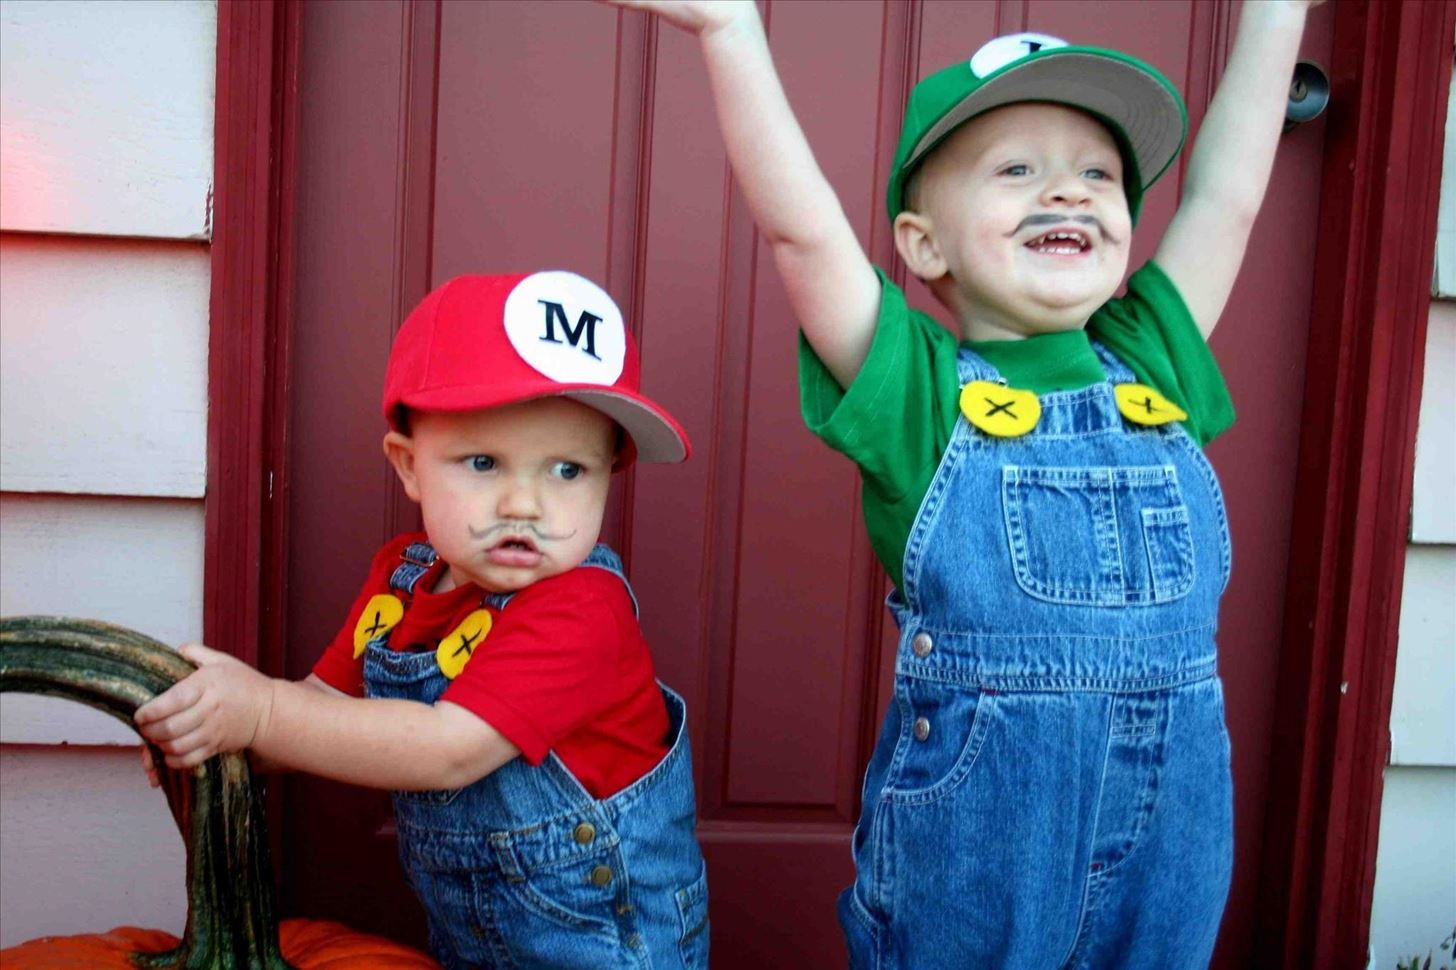 Best ideas about Kids DIY Costume . Save or Pin 10 Cheap Easy & Awesome DIY Halloween Costumes for Kids Now.